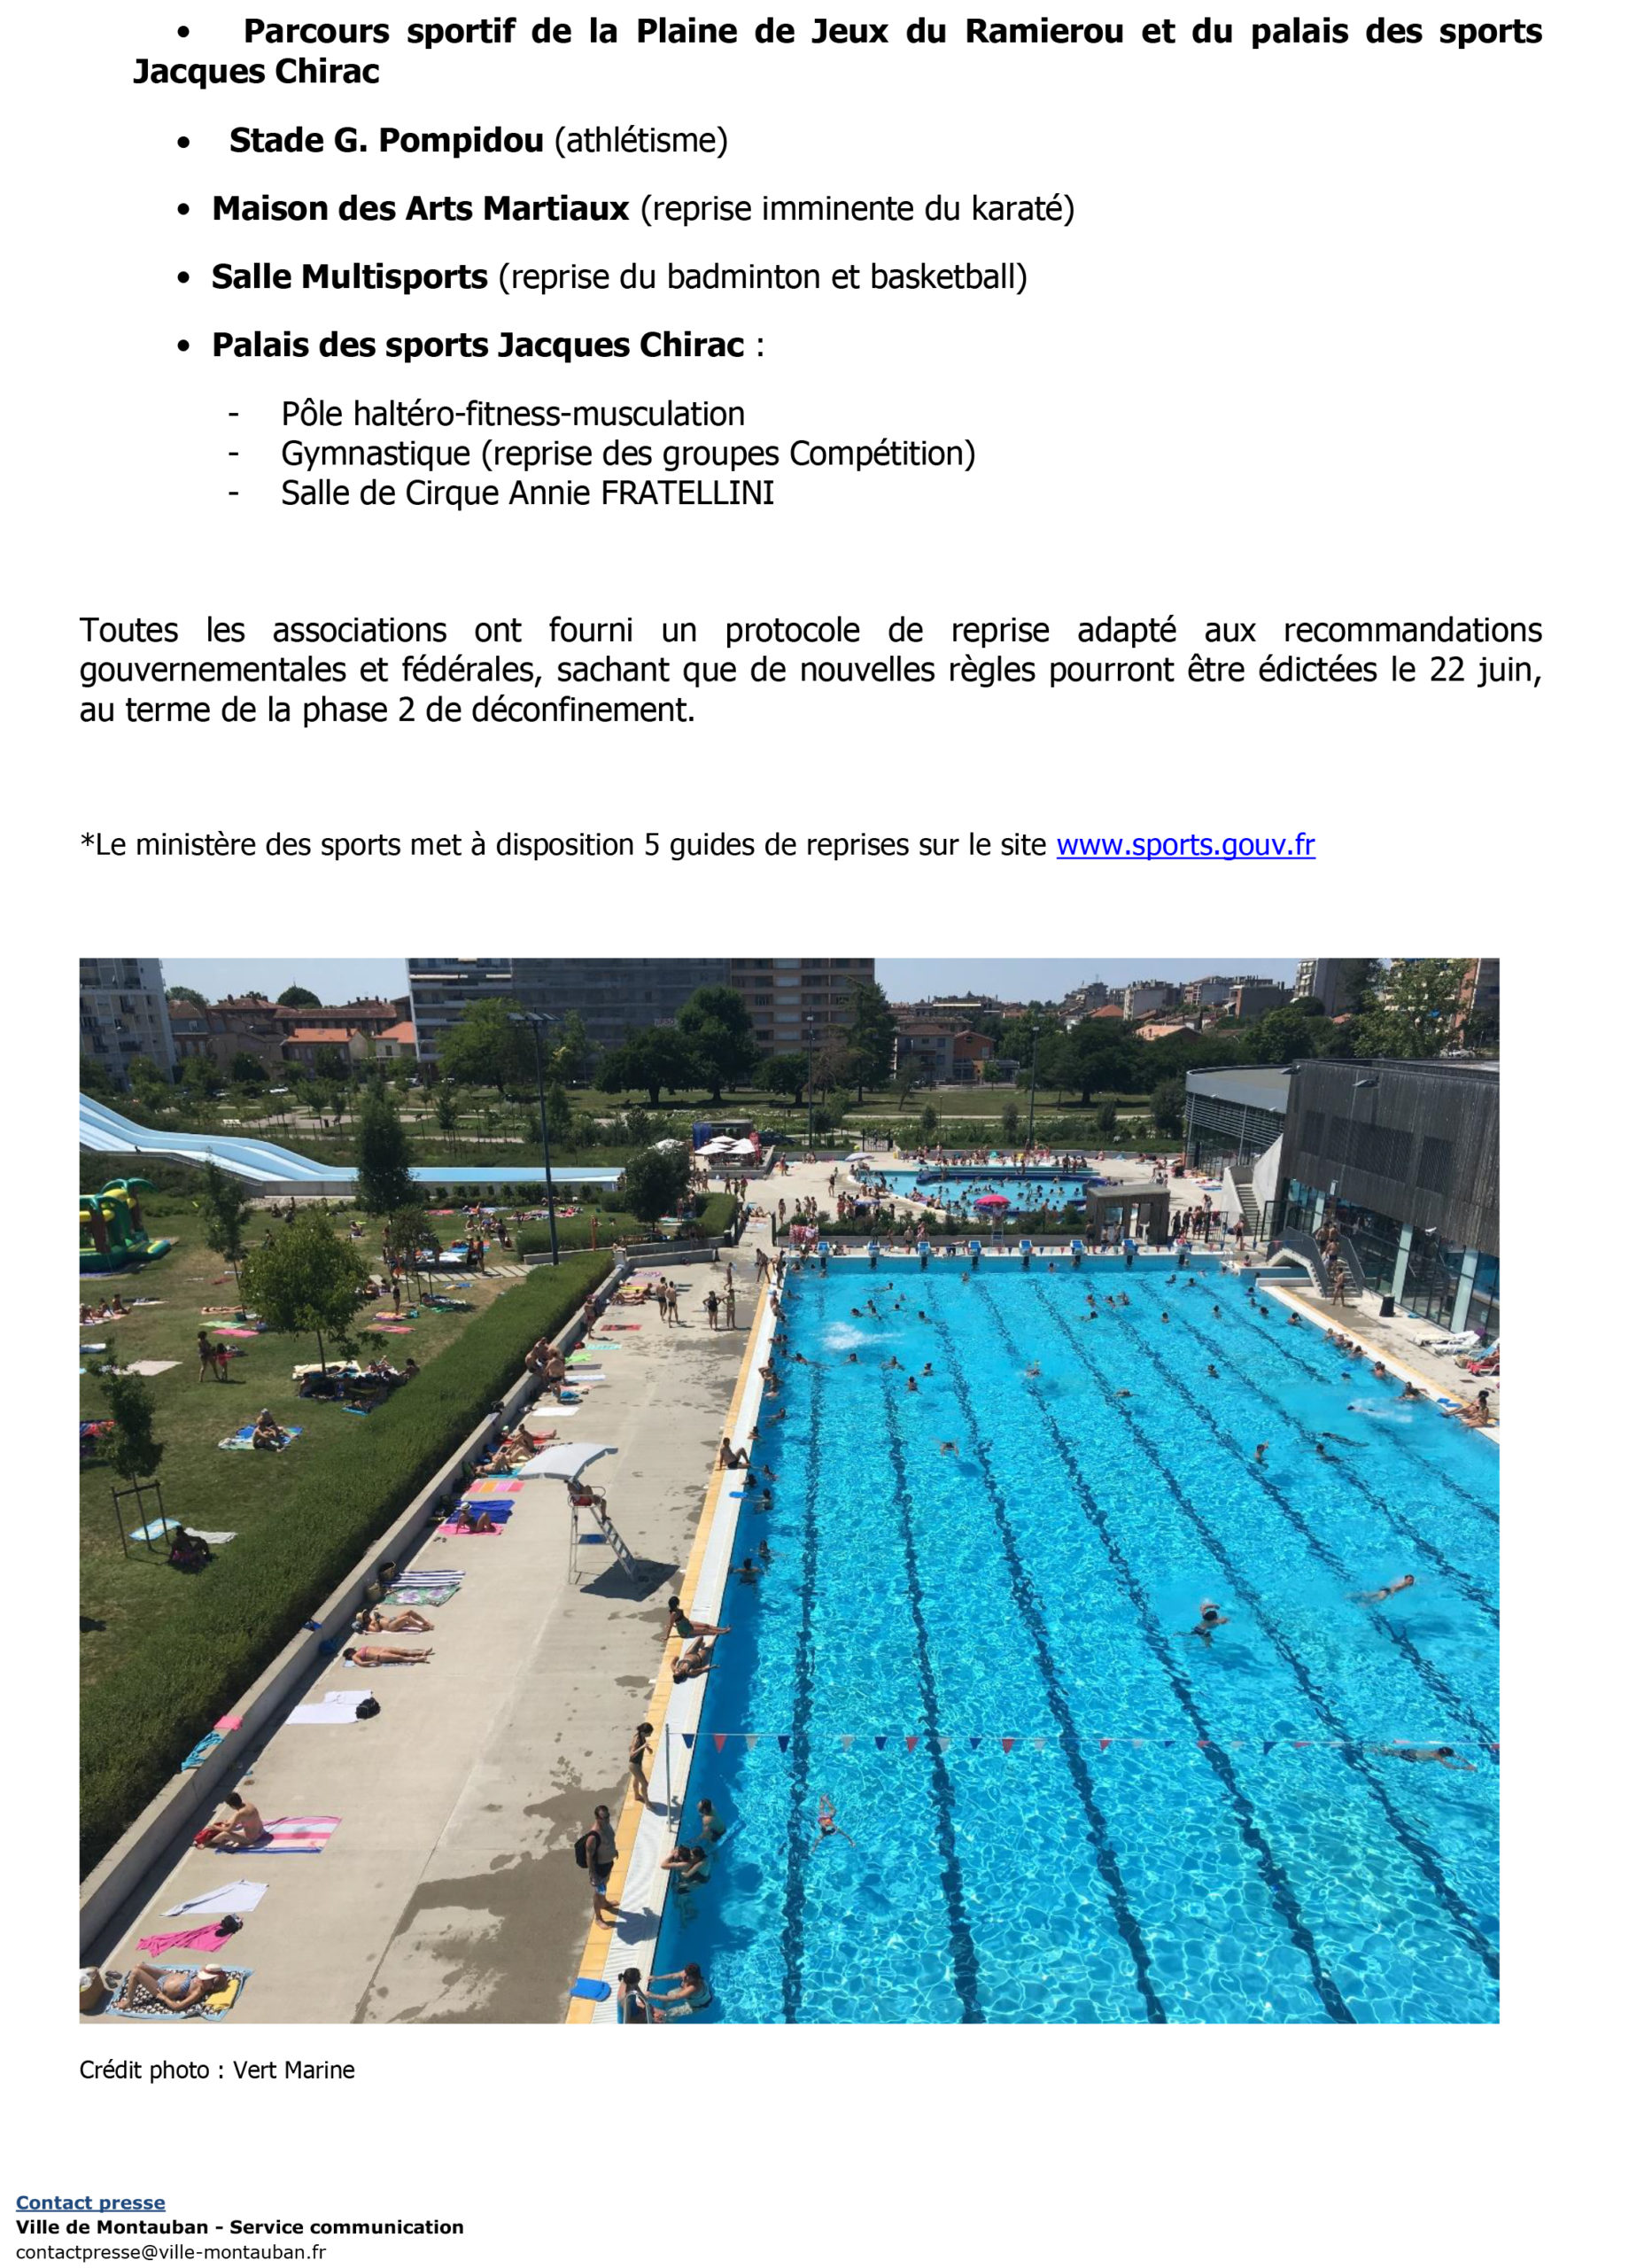 CP – Reouverture equipements sportifs